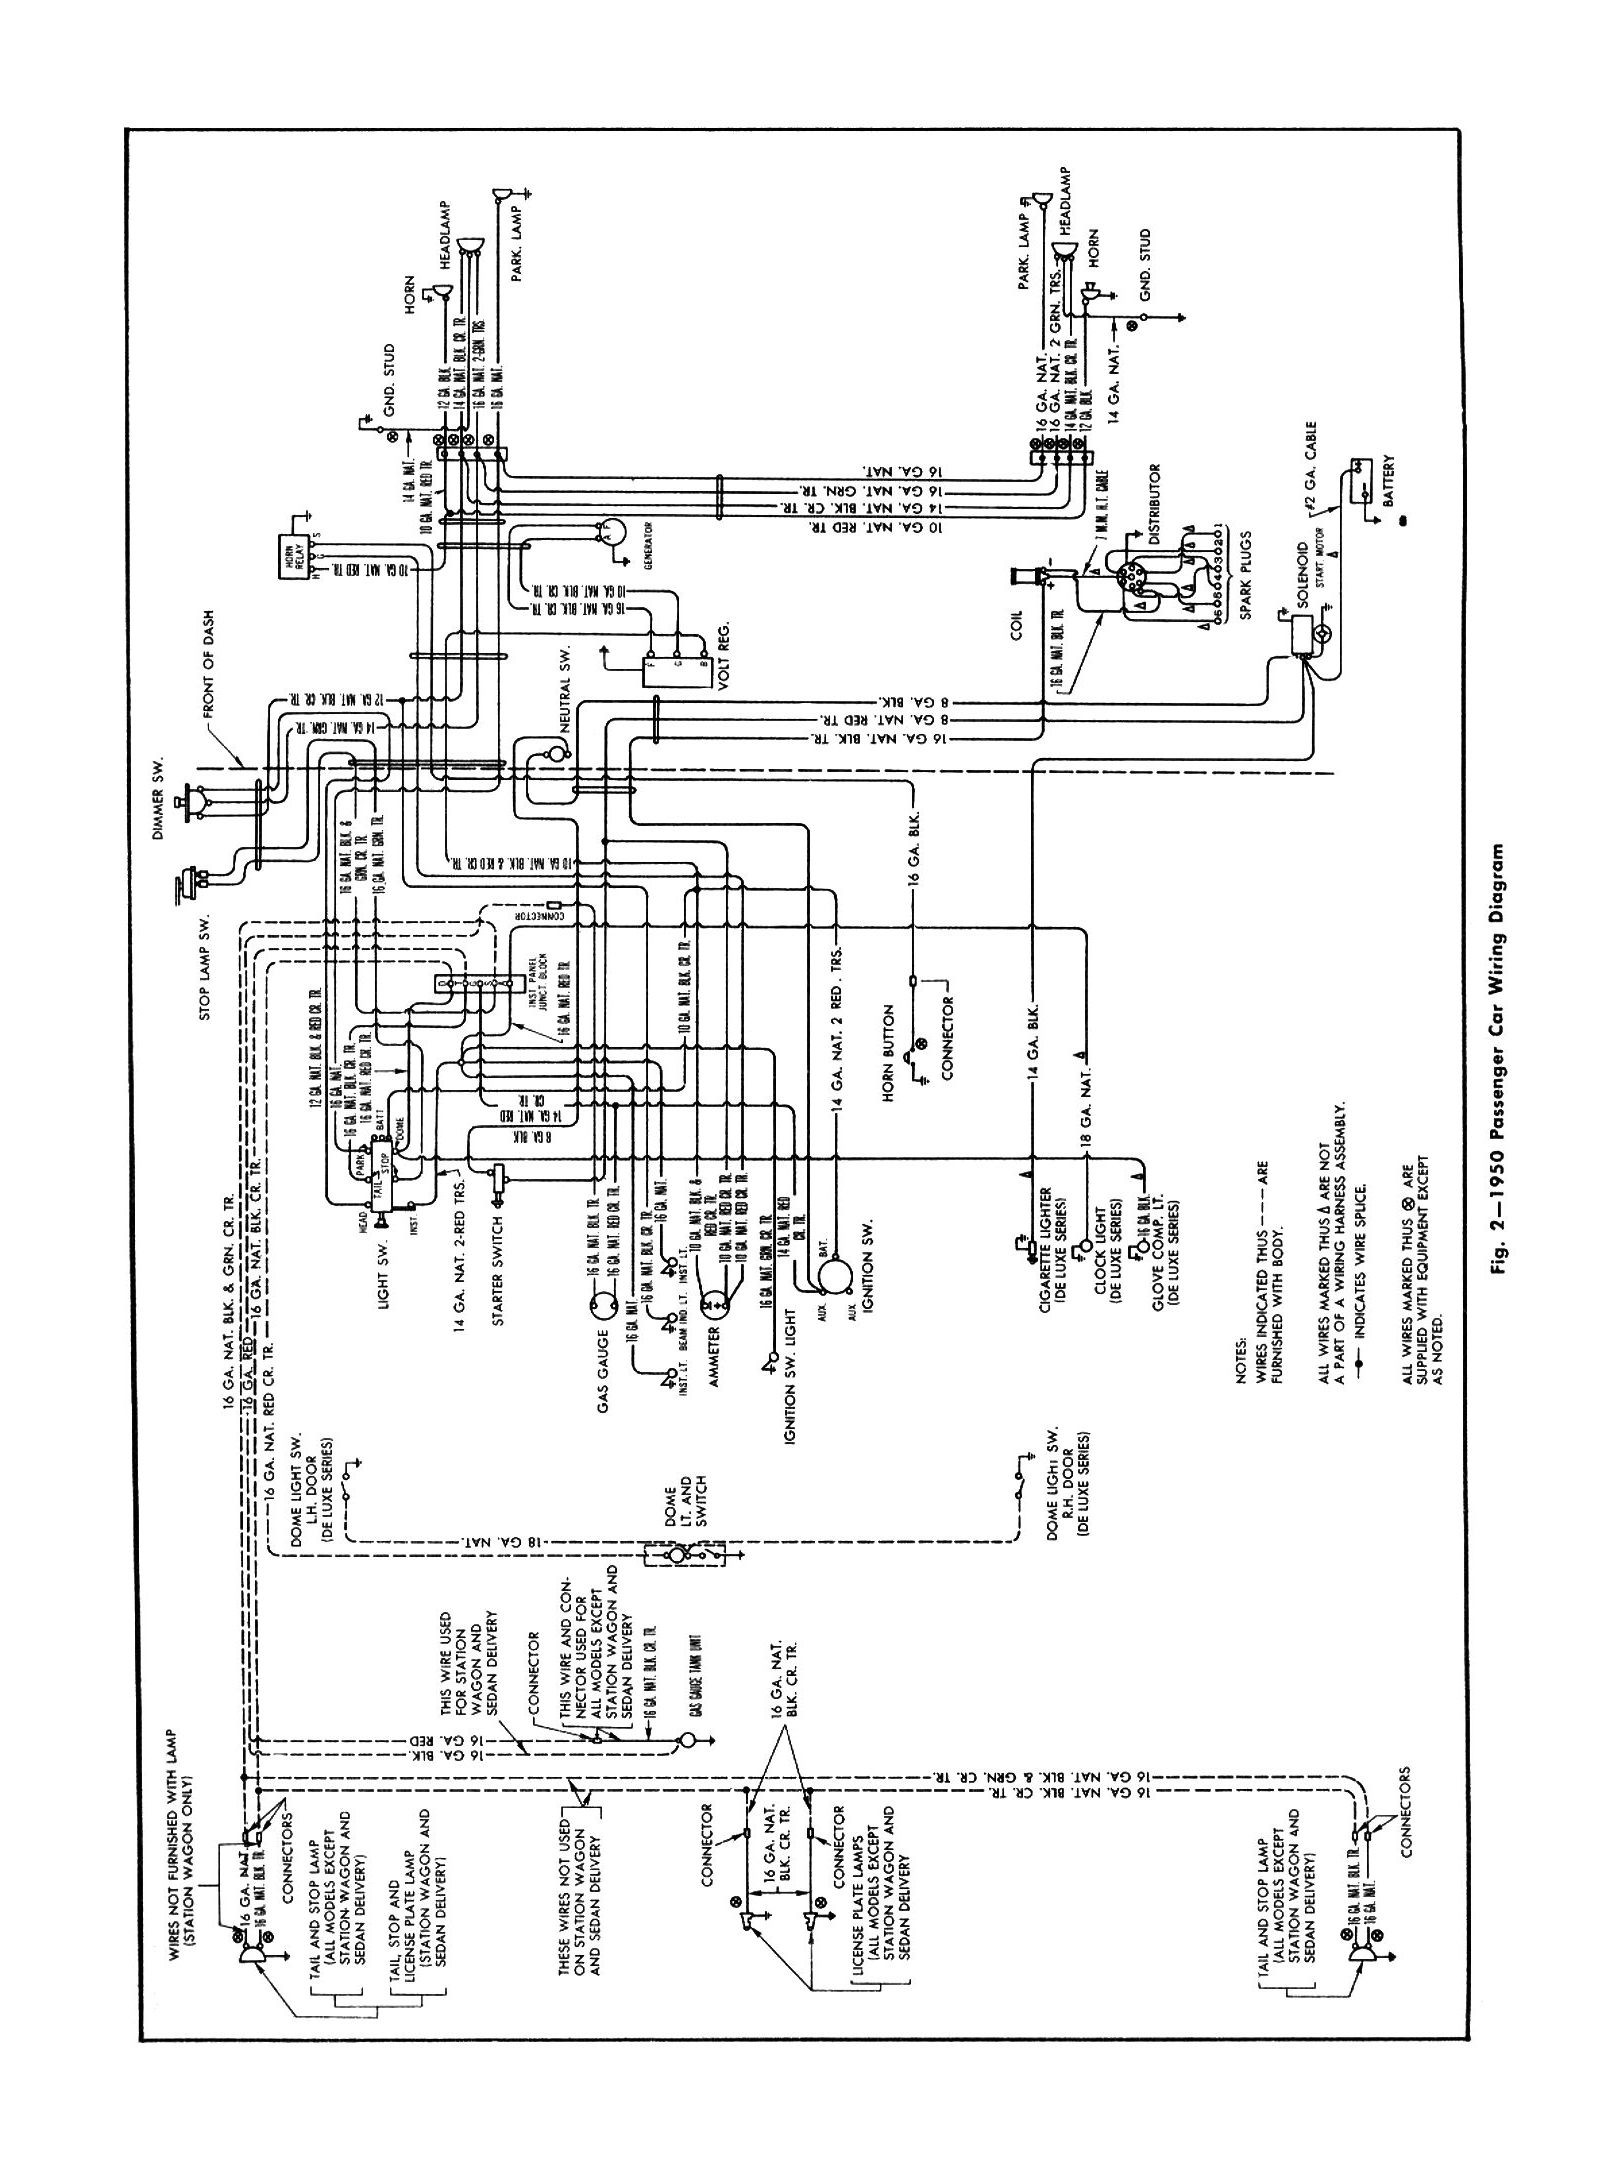 1953 chevy truck wiring diagram light 1952 turn signal free